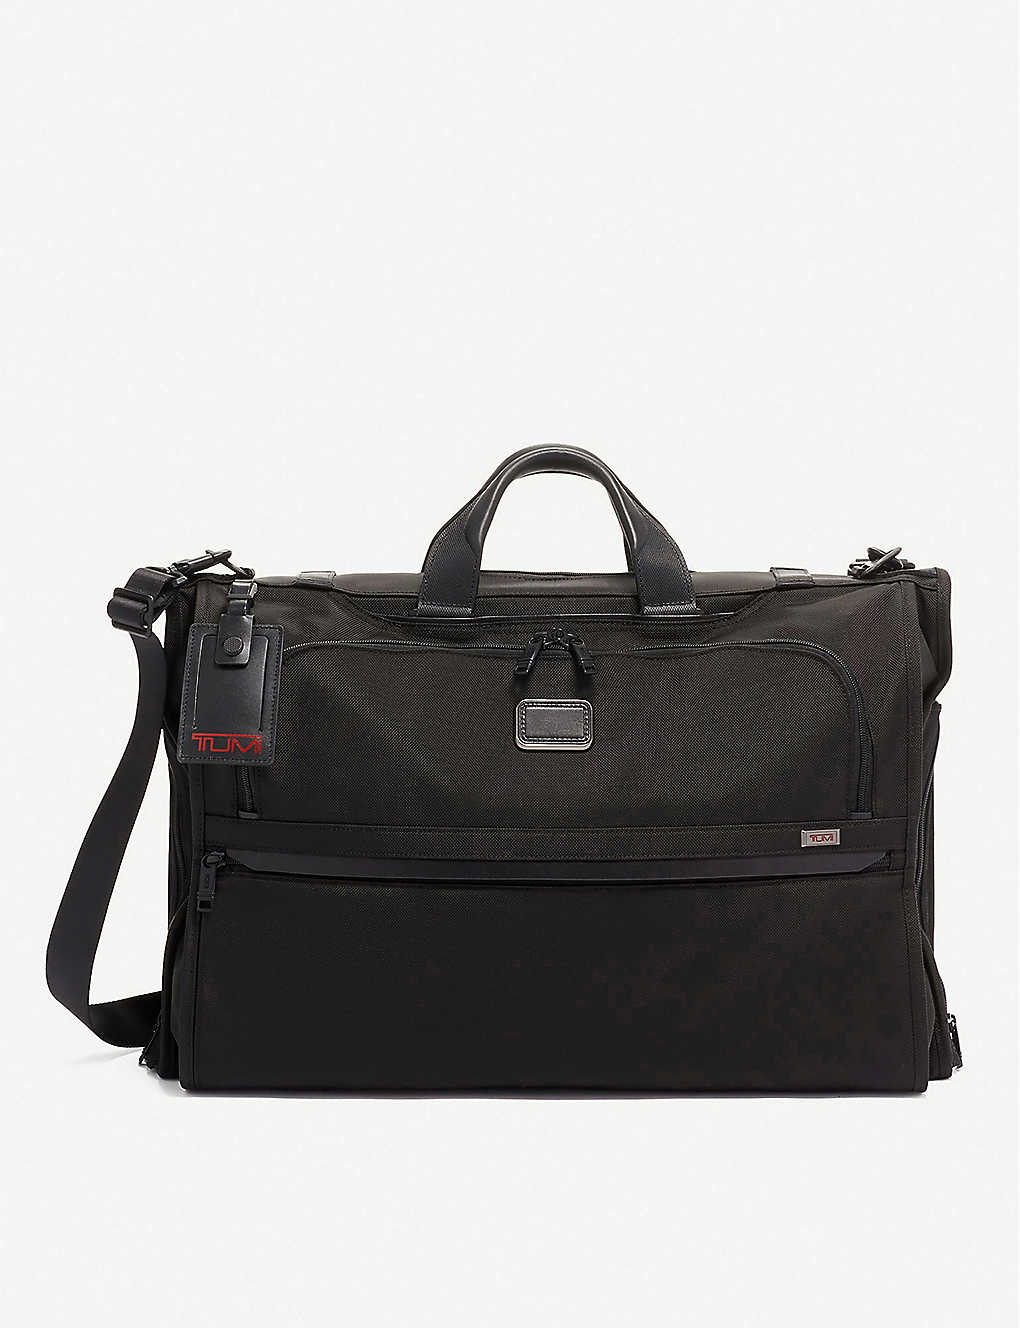 TUMI: Alpha 3 Tri-Fold garment carry-on bag